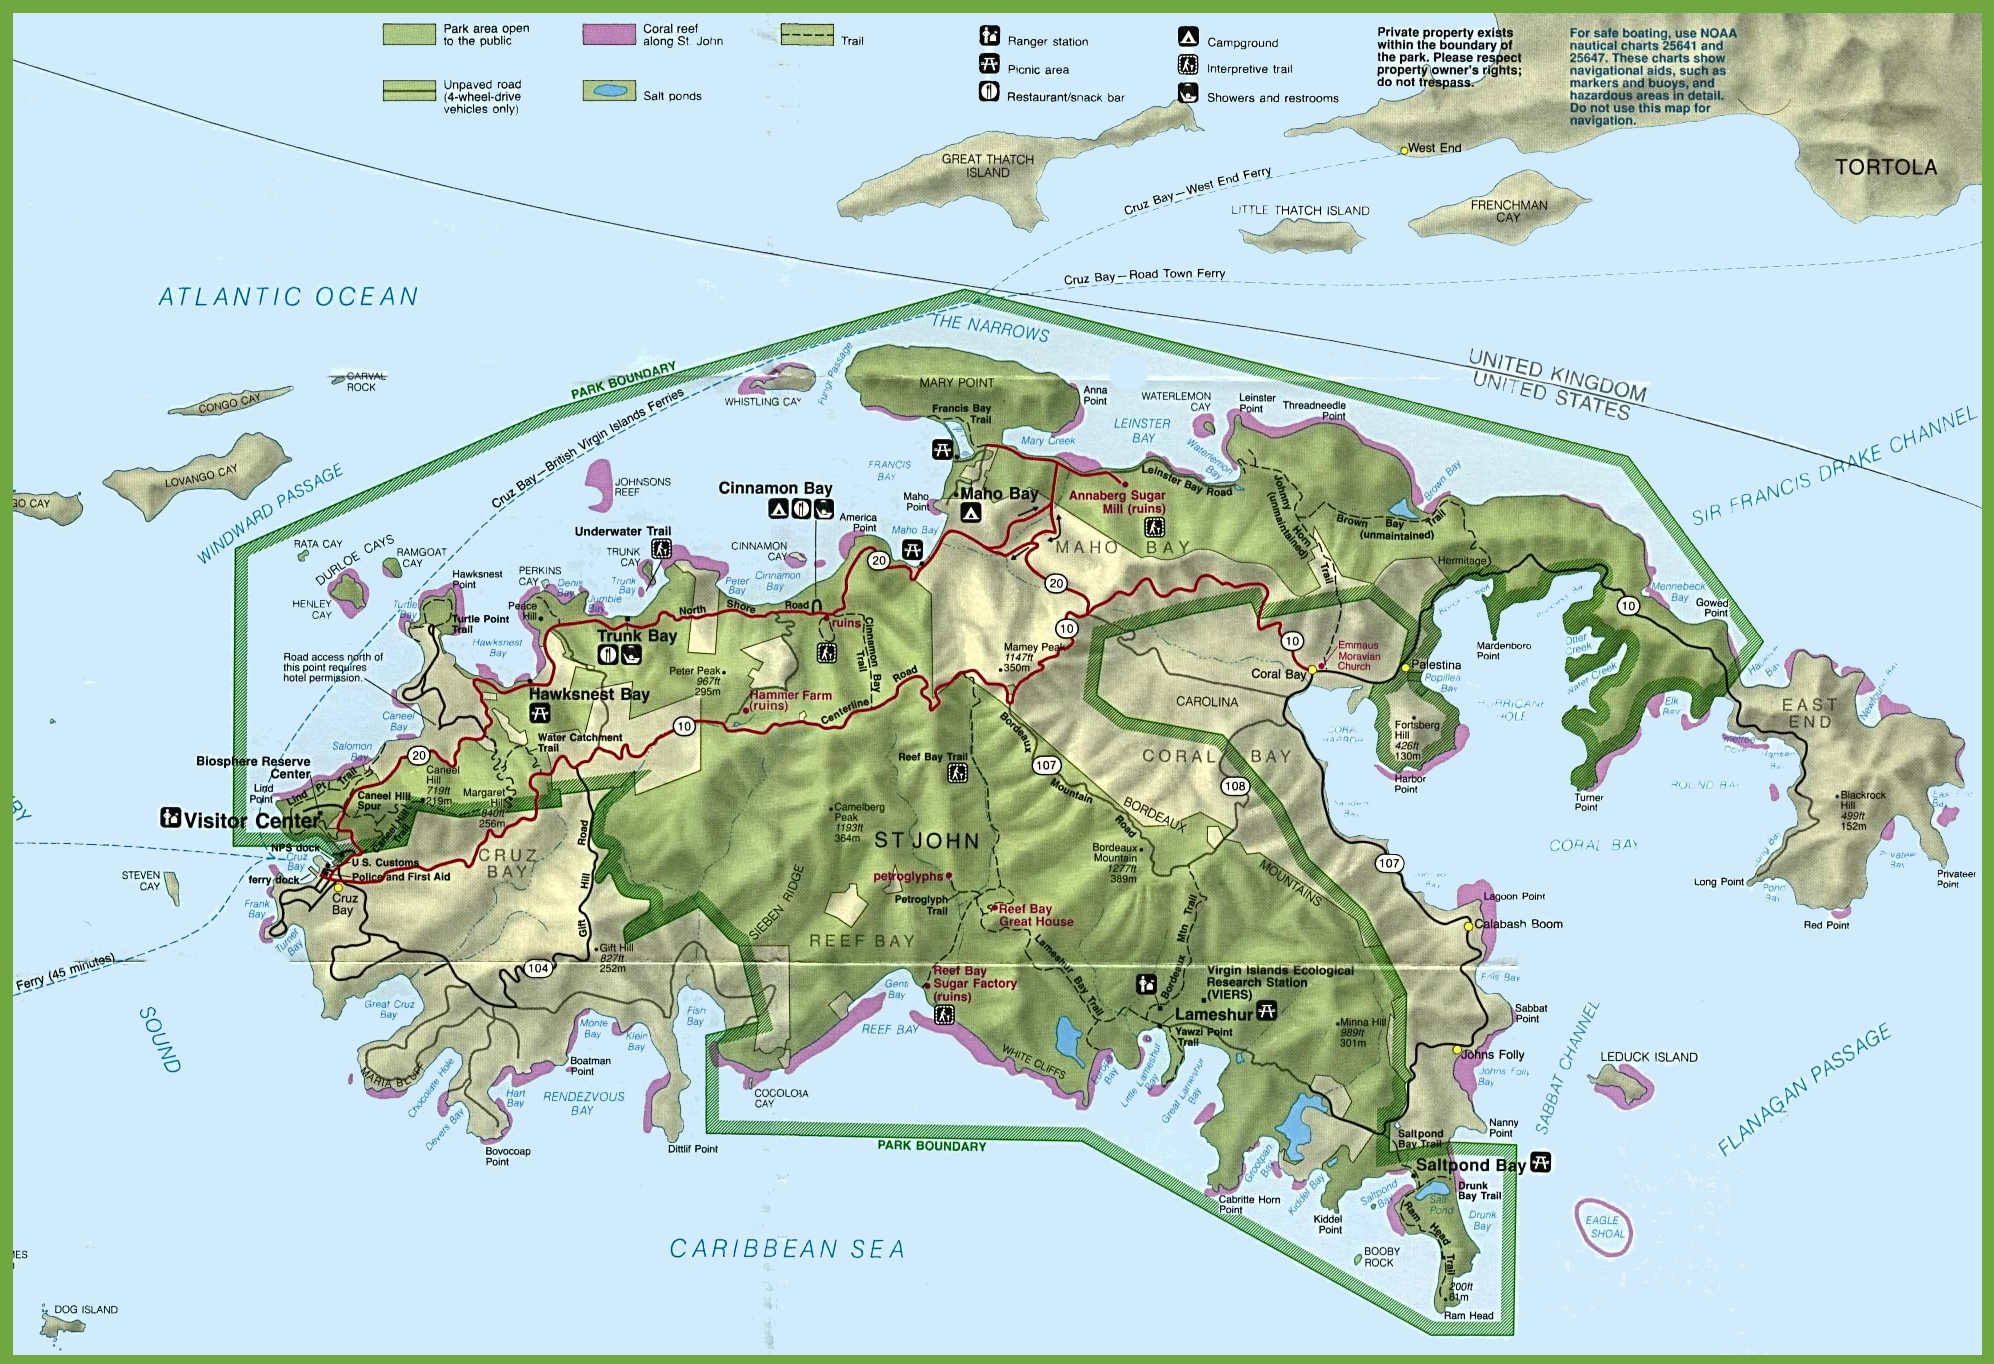 saint john island tourist map